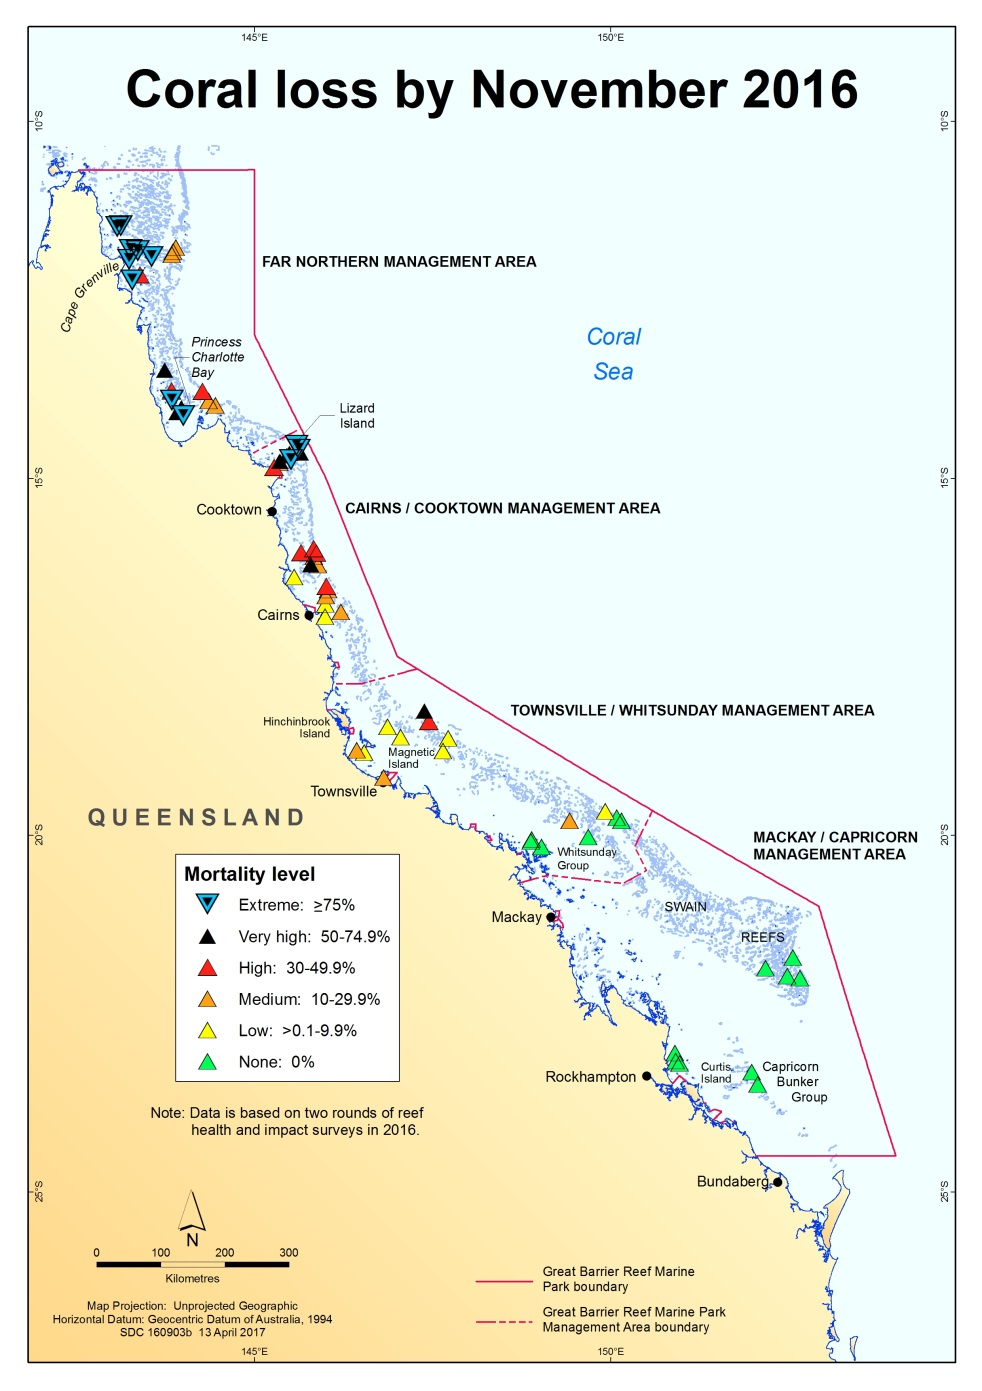 Map of the Great Barrier Reef Marine Park that shows the level of coral loss by November 2016